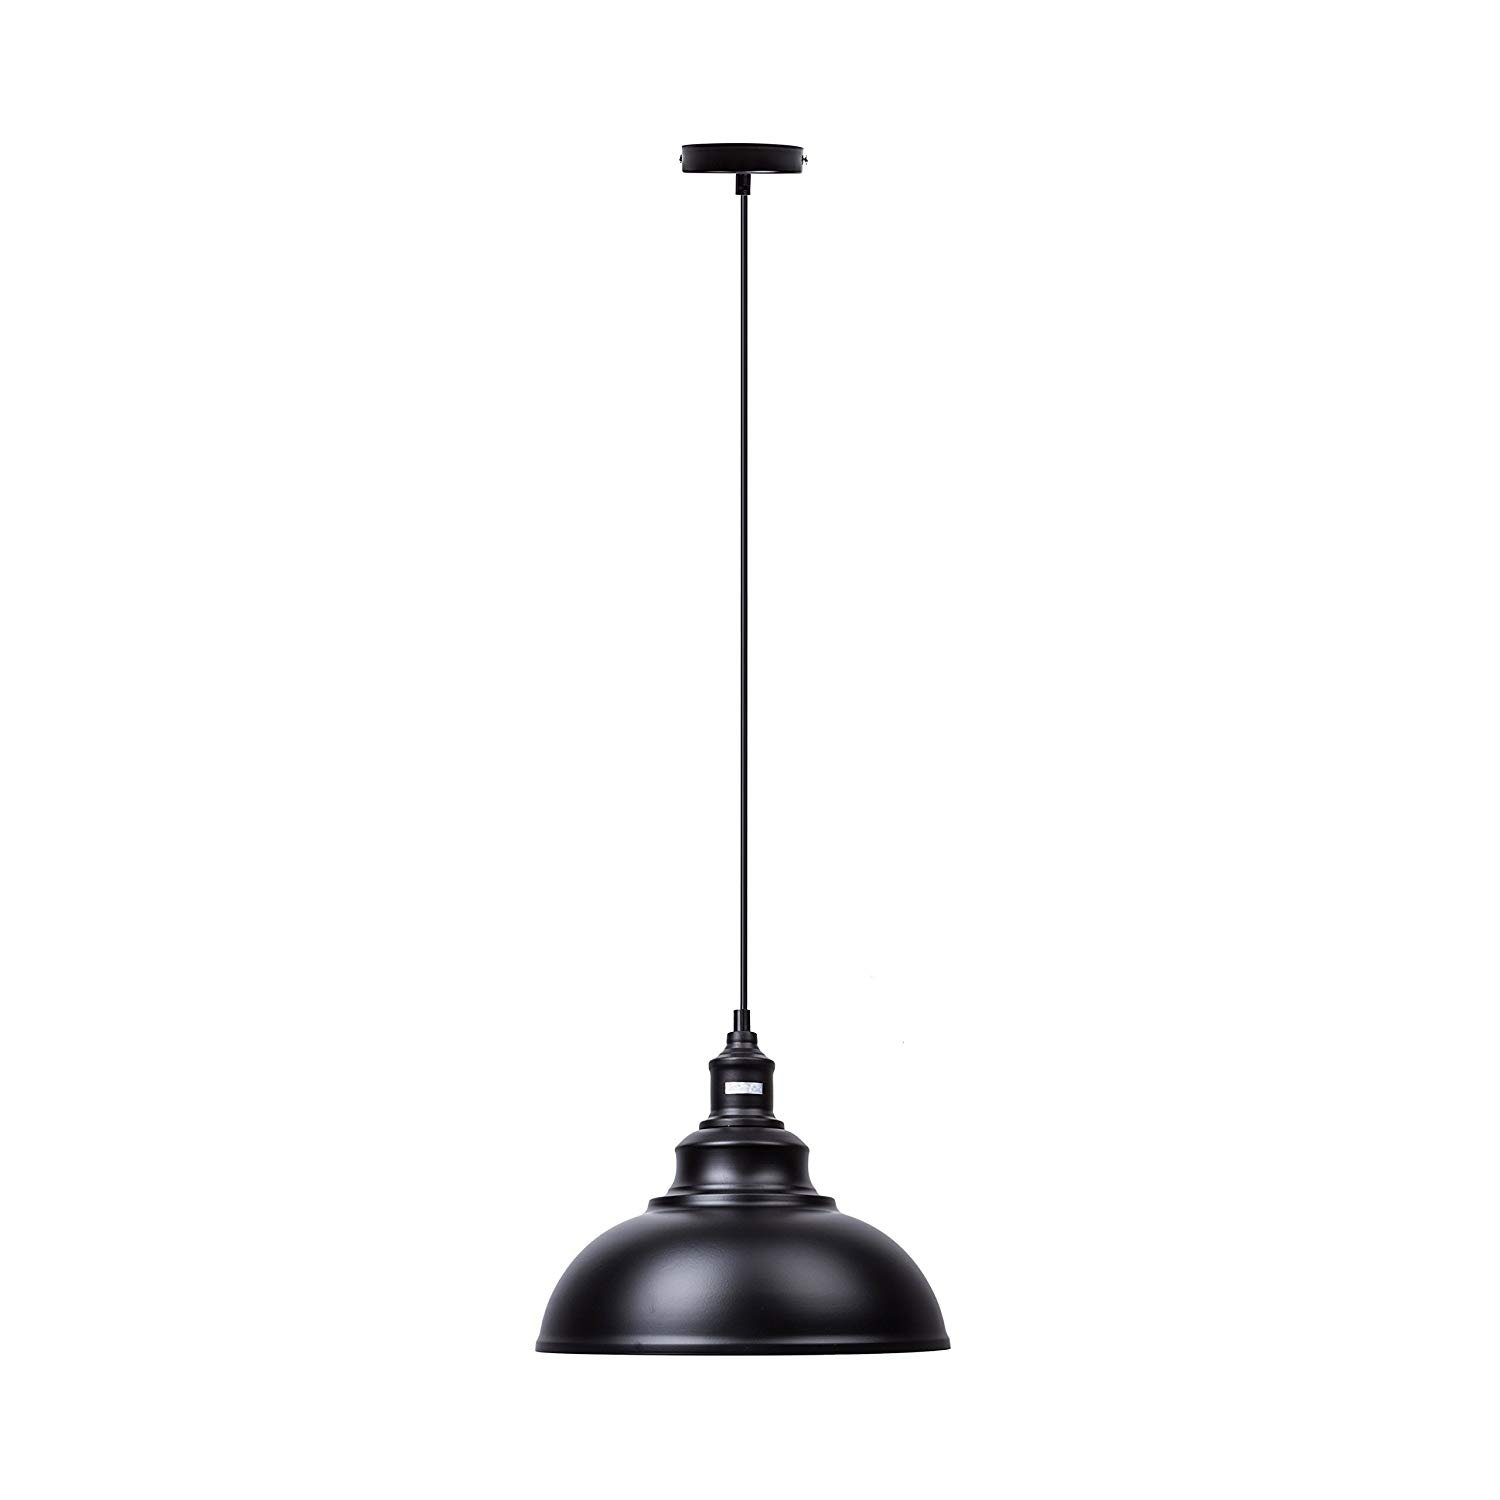 ndustrial Pendant Light Vintage Black Hanging Lights Metal Edison Ceiling Mount Fixture Lighting